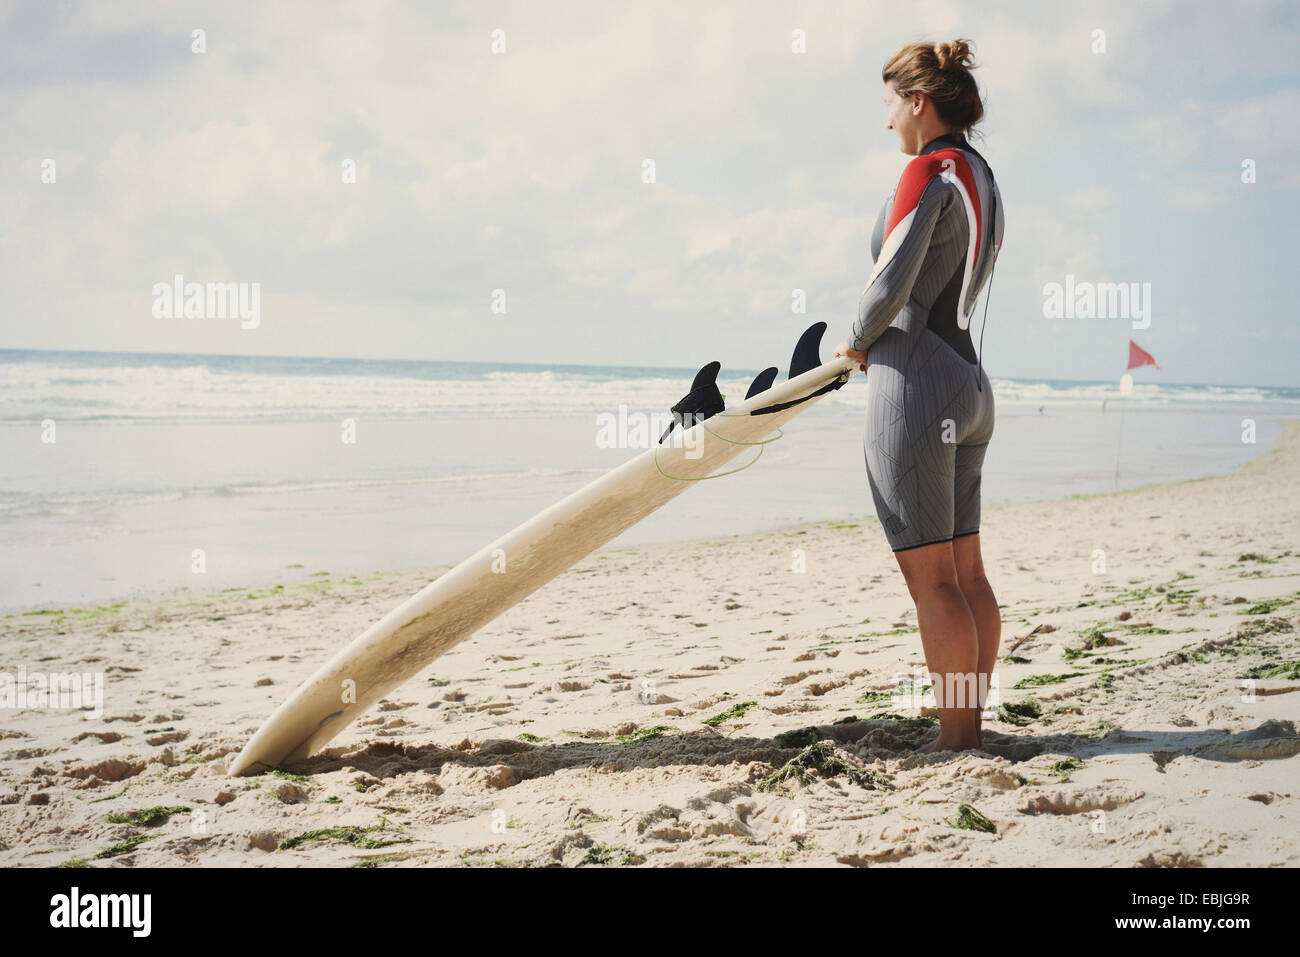 Surfer with surfboard on beach, Lacanau, France - Stock Image